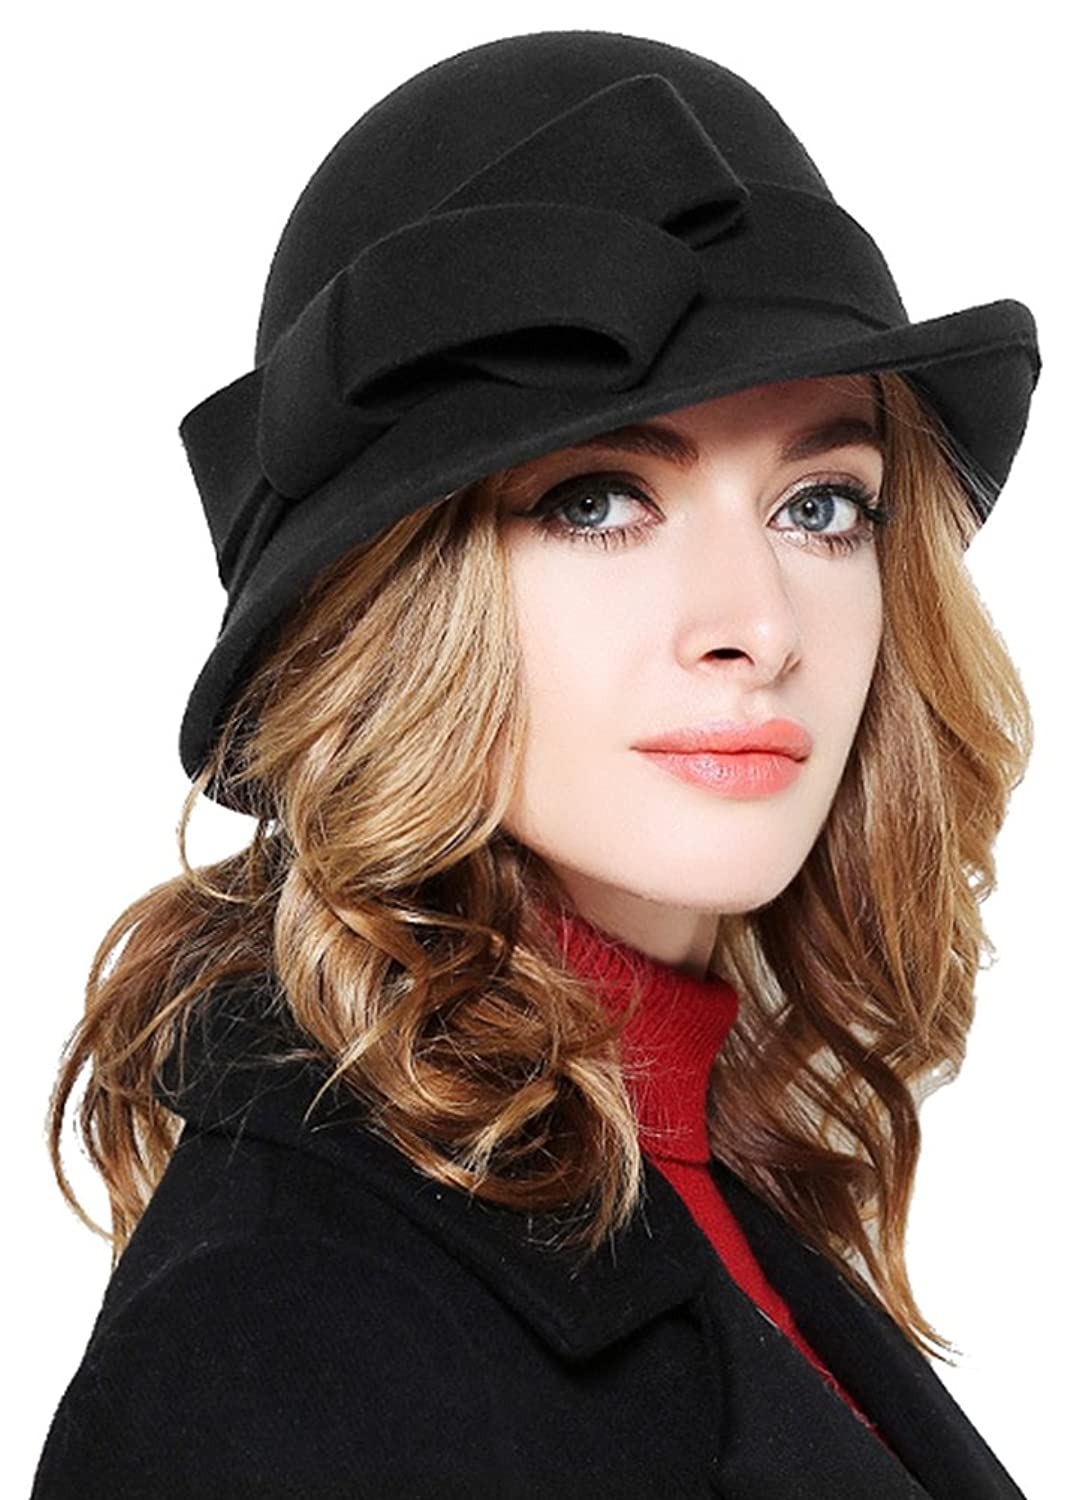 Downton Abbey Costumes Ideas Bellady Women Solid Color Winter Hat 100% Wool Cloche Bucket with Bow Accent $21.99 AT vintagedancer.com